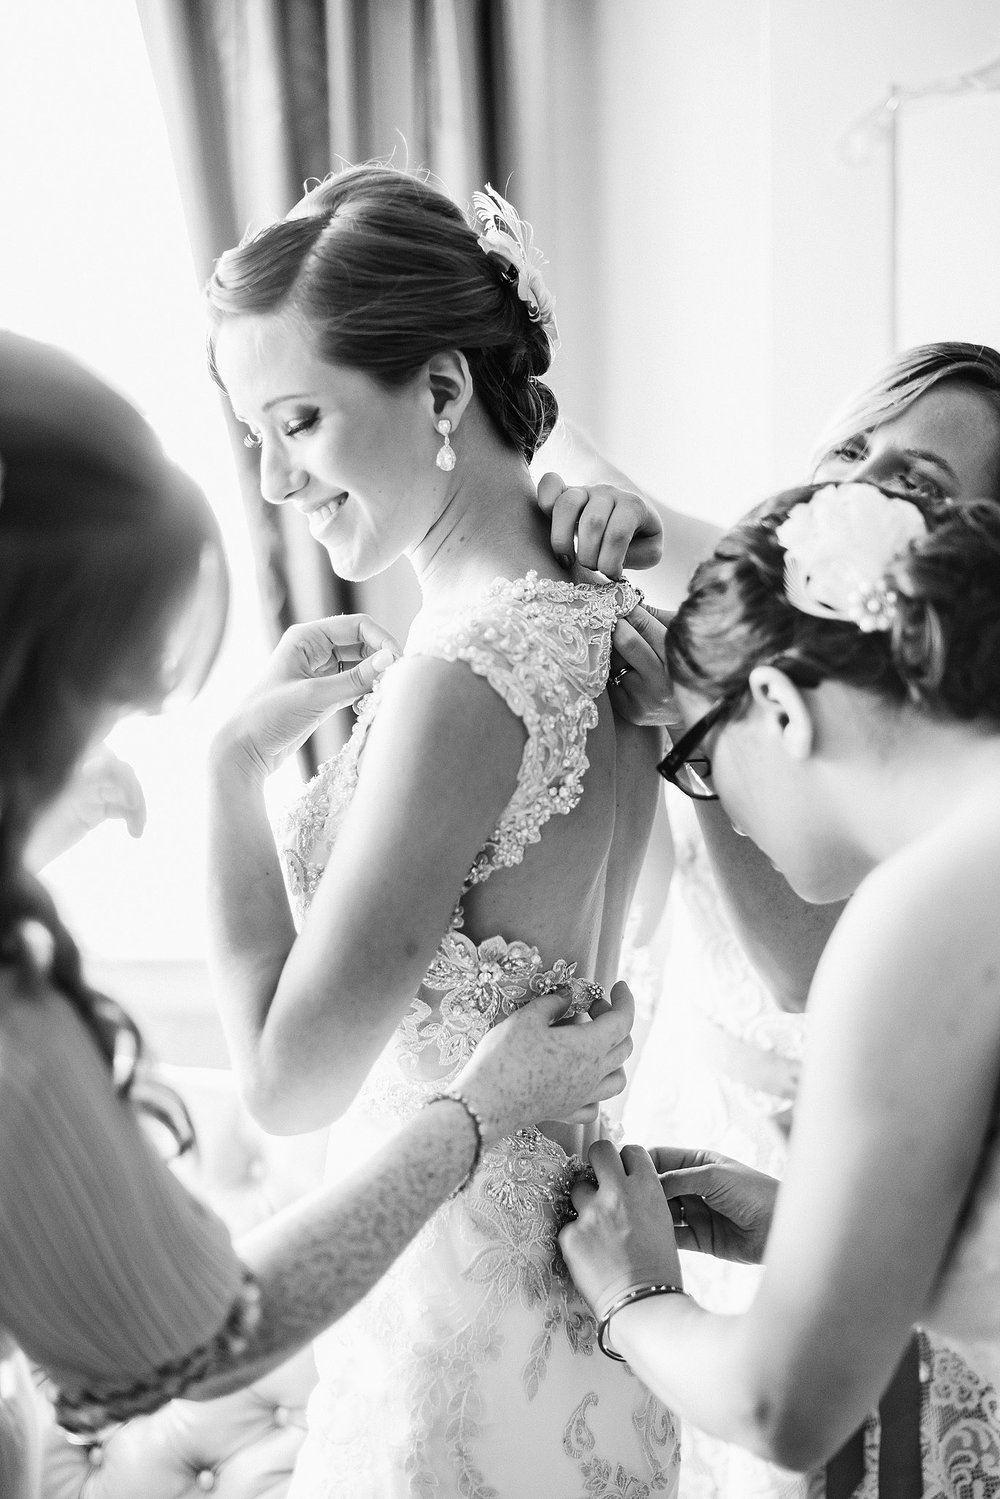 chateau-laurier-bride-getting-ready-ottawa-wedding-photographer.JPG